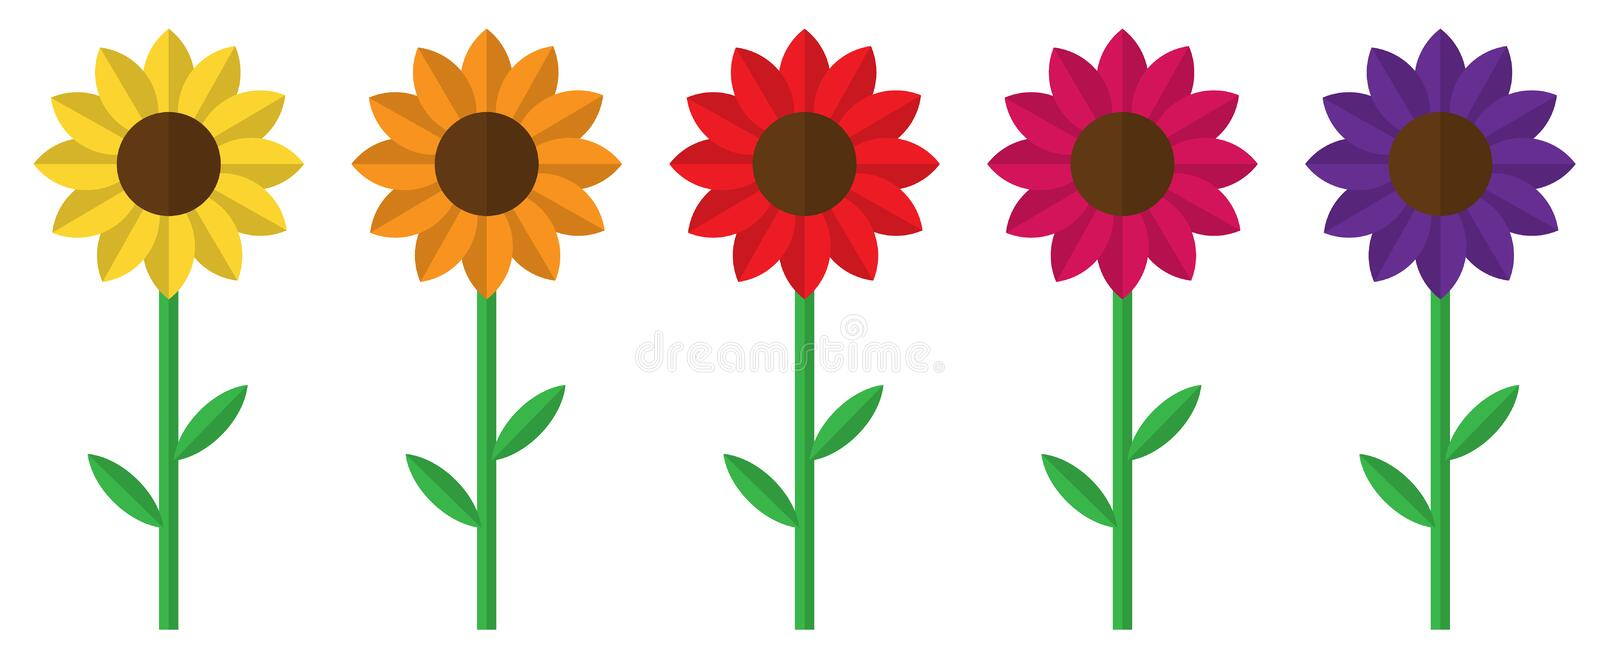 Five Bright Colourful Flowers, Sunflowers, Isolated, Vector Illustration  Stock Vector - Illustration of border, flower: 200429972